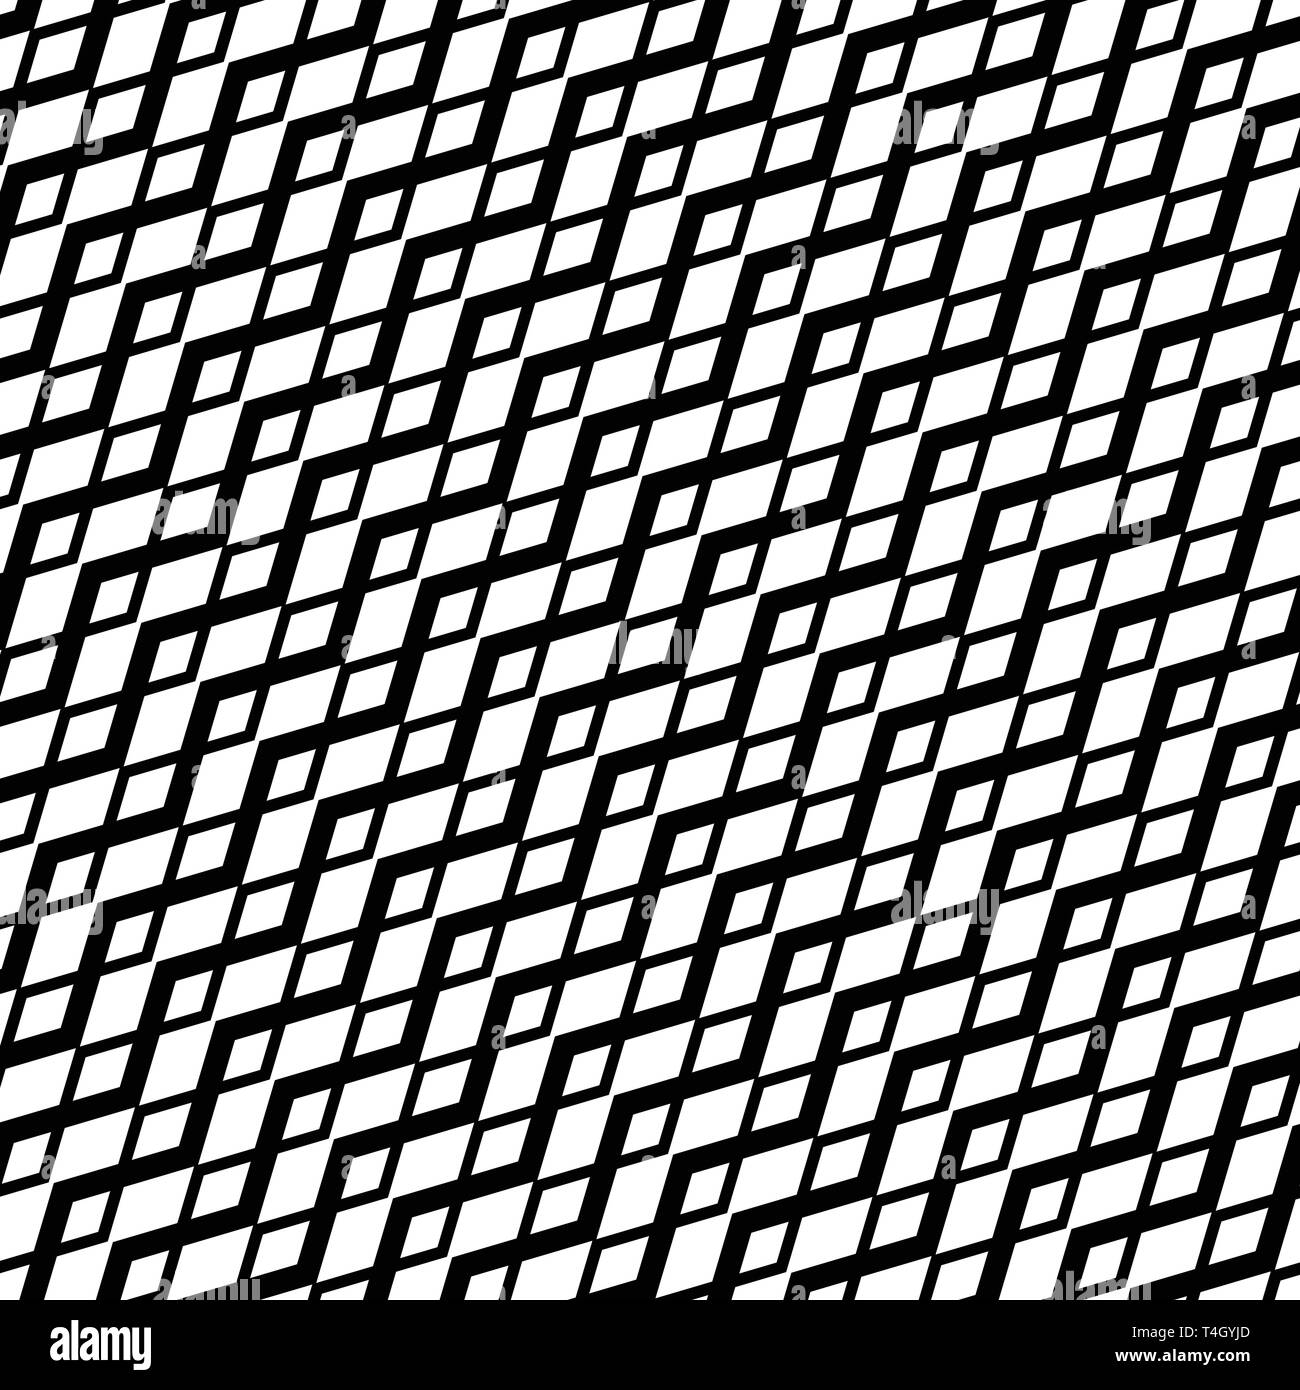 Grid, mesh with wavy, criss-cross, zig-zag lines  Abstract